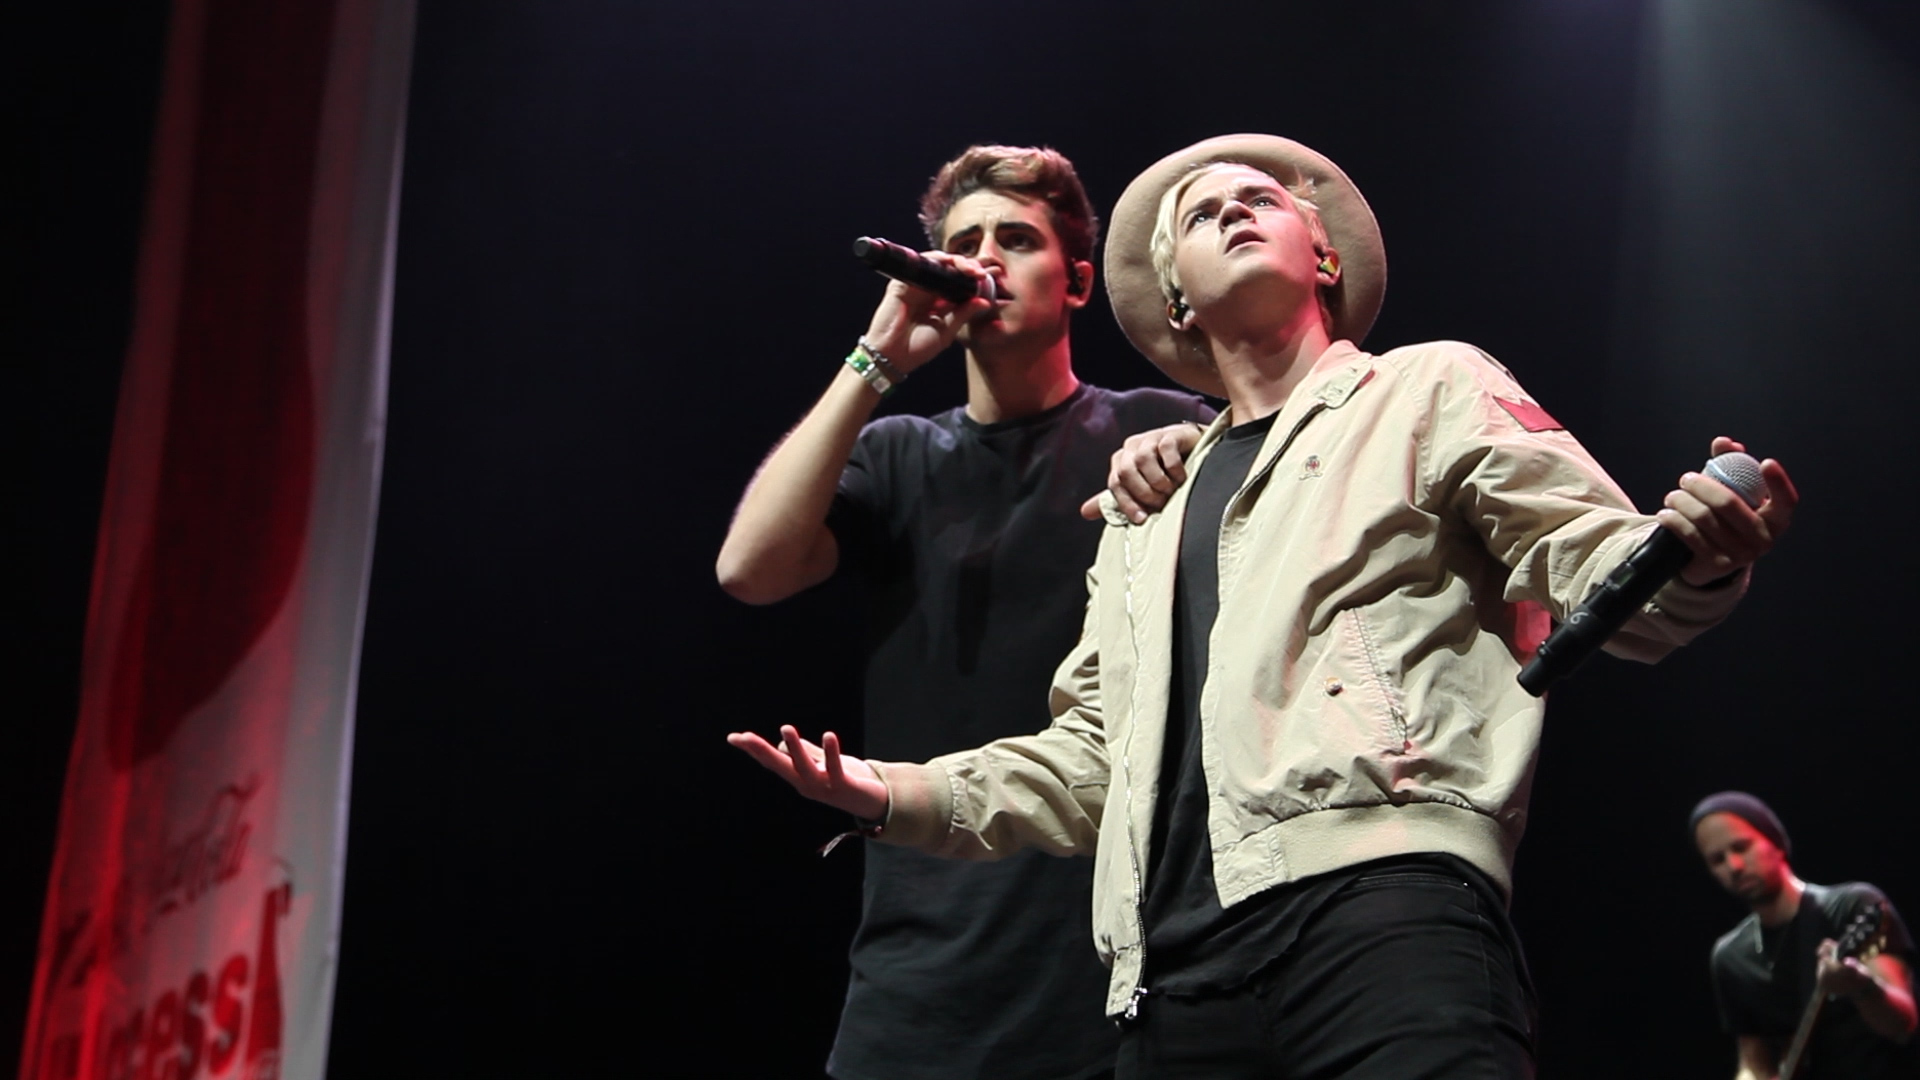 Exclusive Interview: Jack & Jack Bring Back The Lost Art Of The Duo